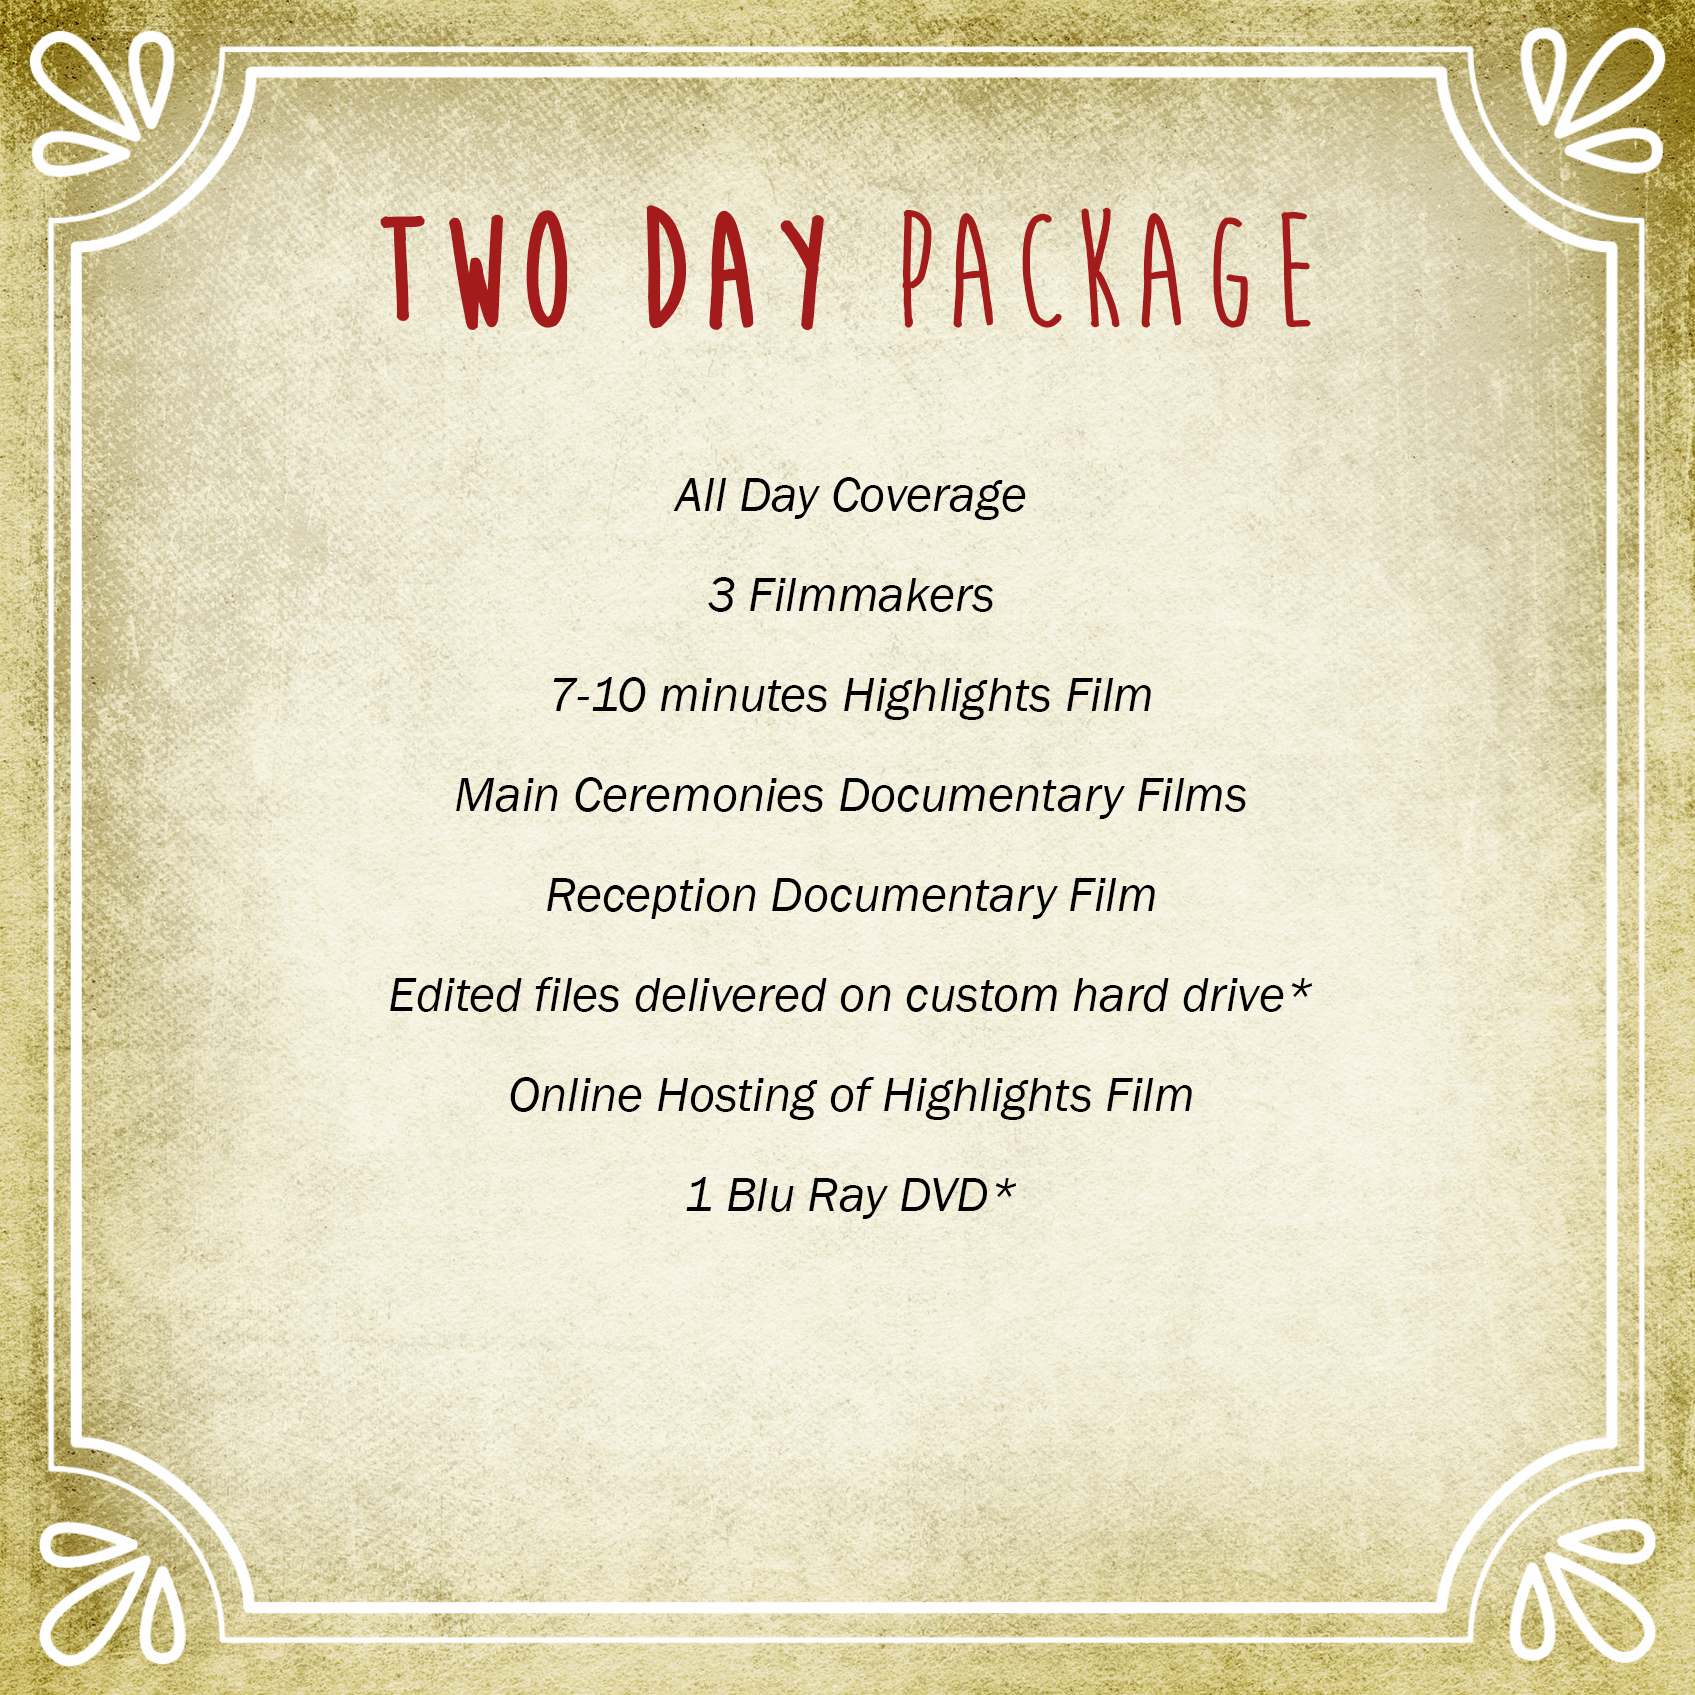 Two Day Package | Vimage Weddings